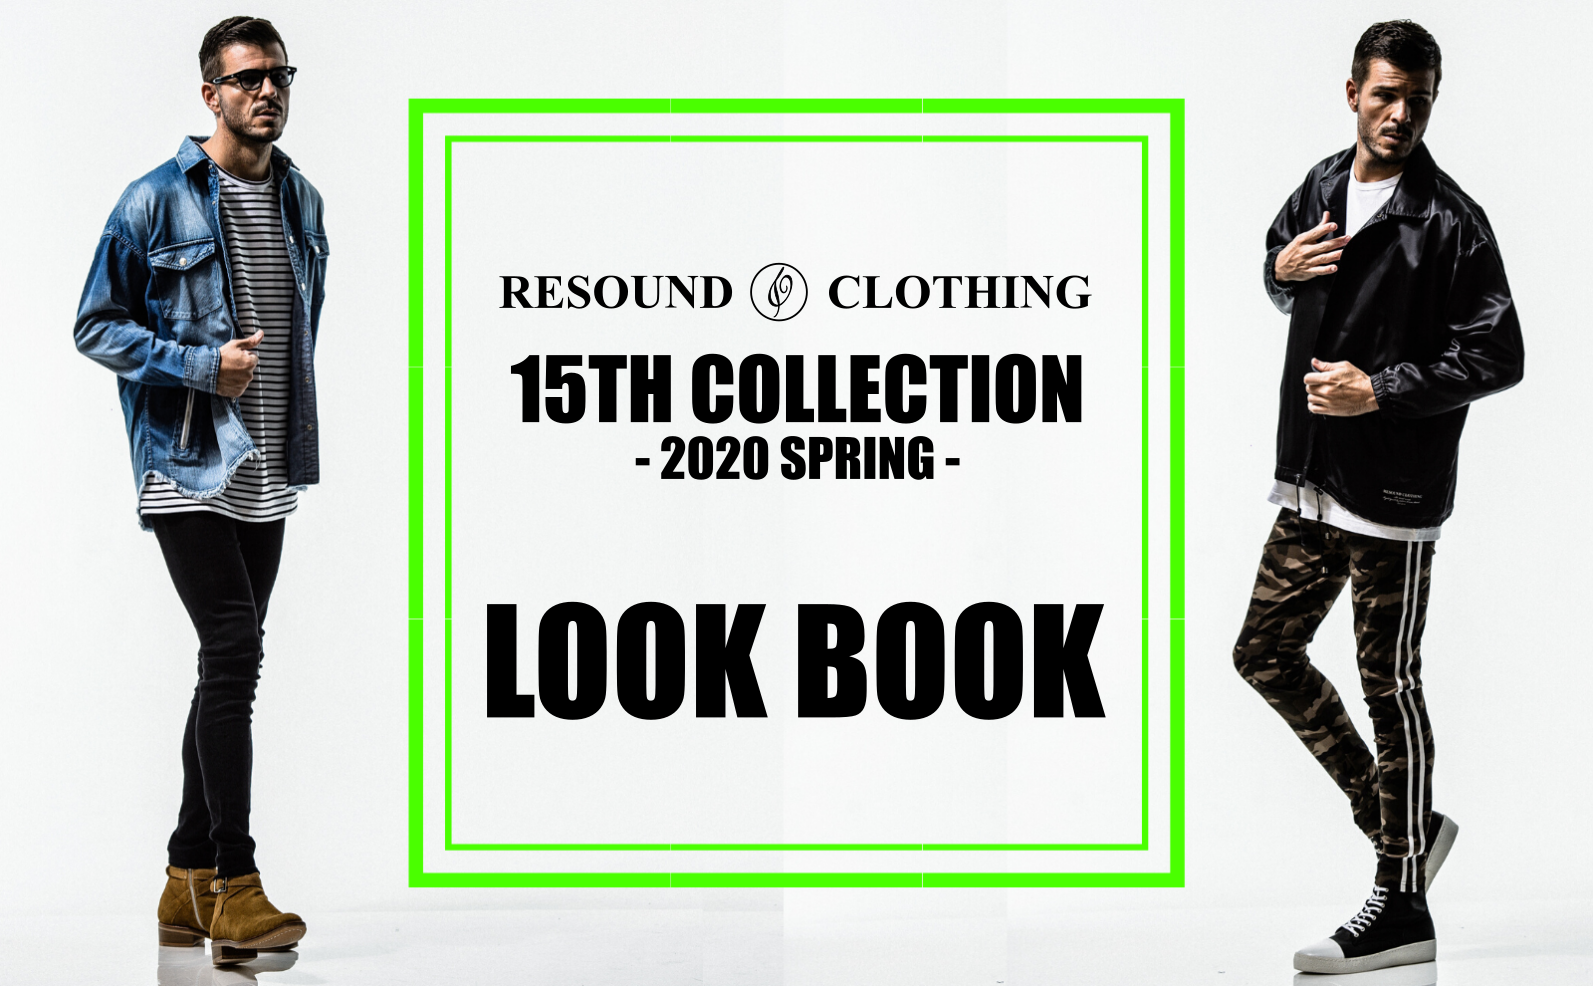 14TH COLLECTION 2020SPRING LOOK BOOK